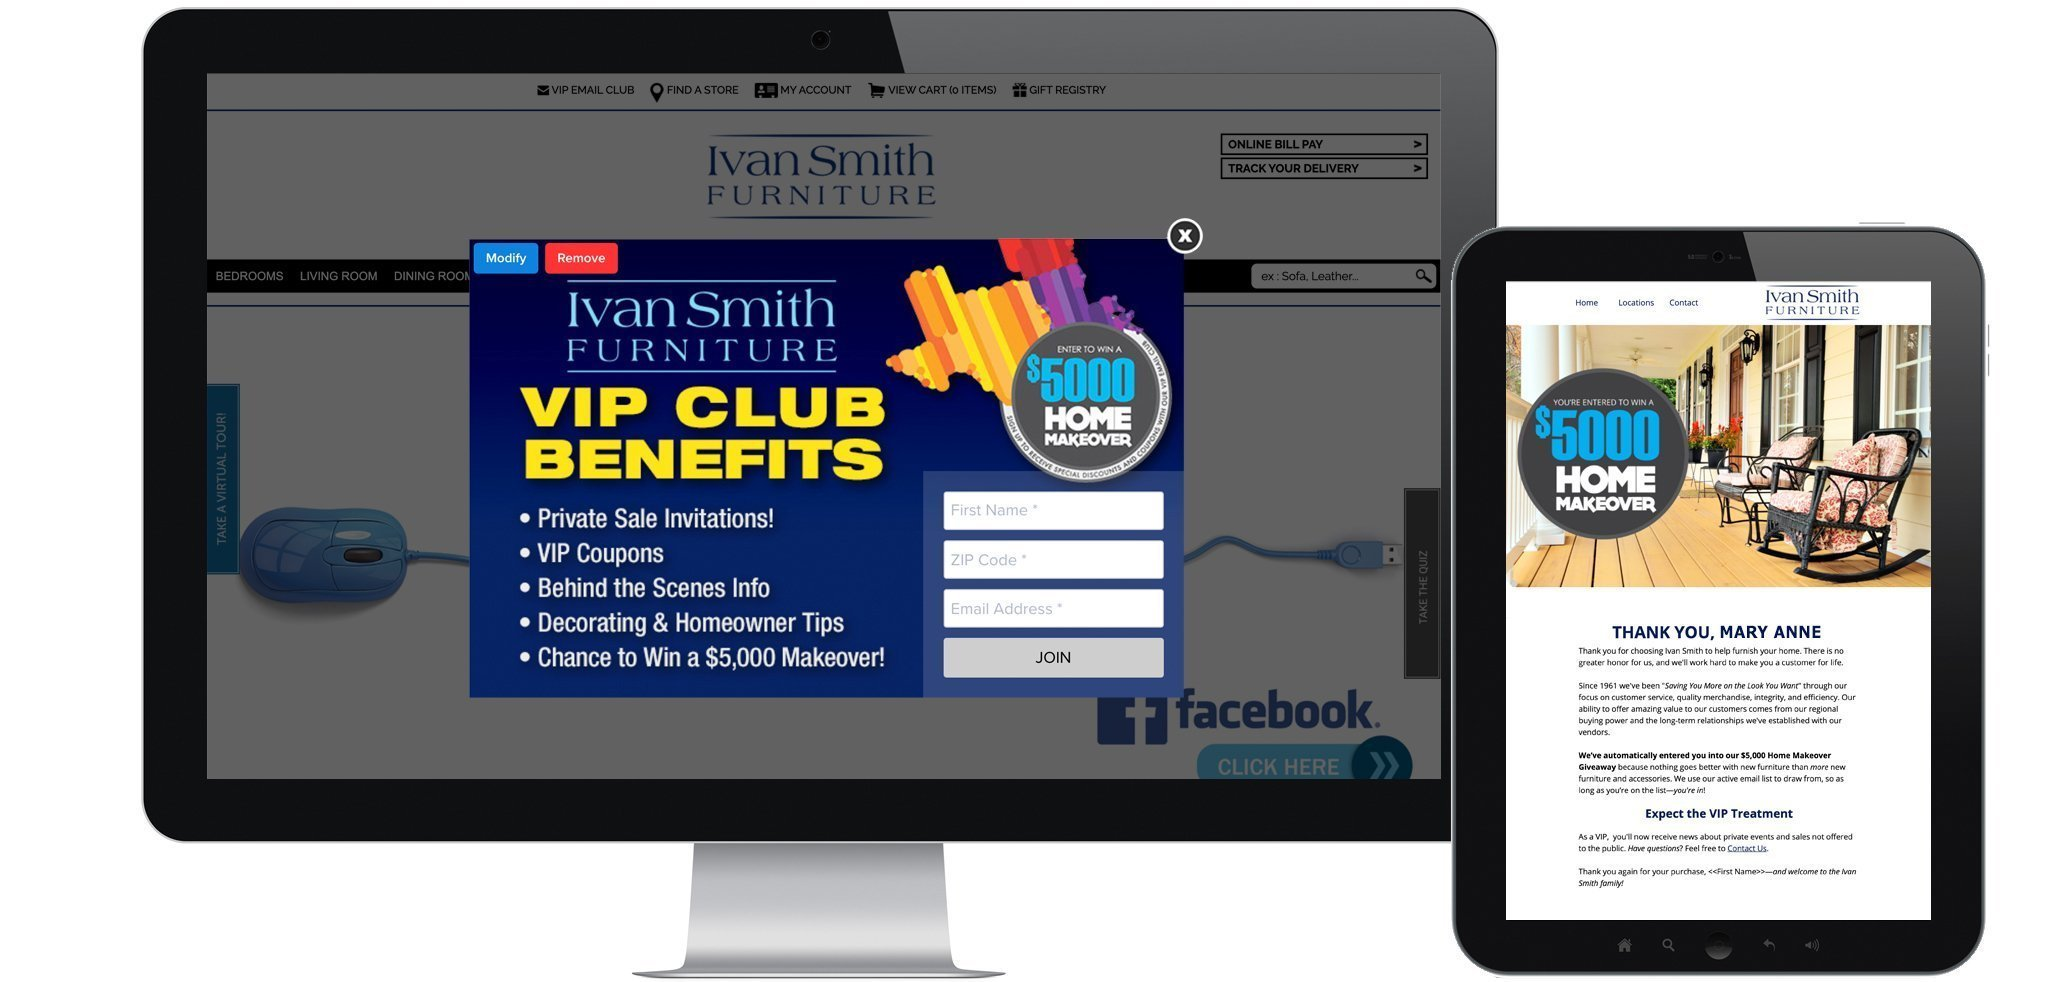 Email Lead Capture Update for Furniture Store Ivan Smith Banner